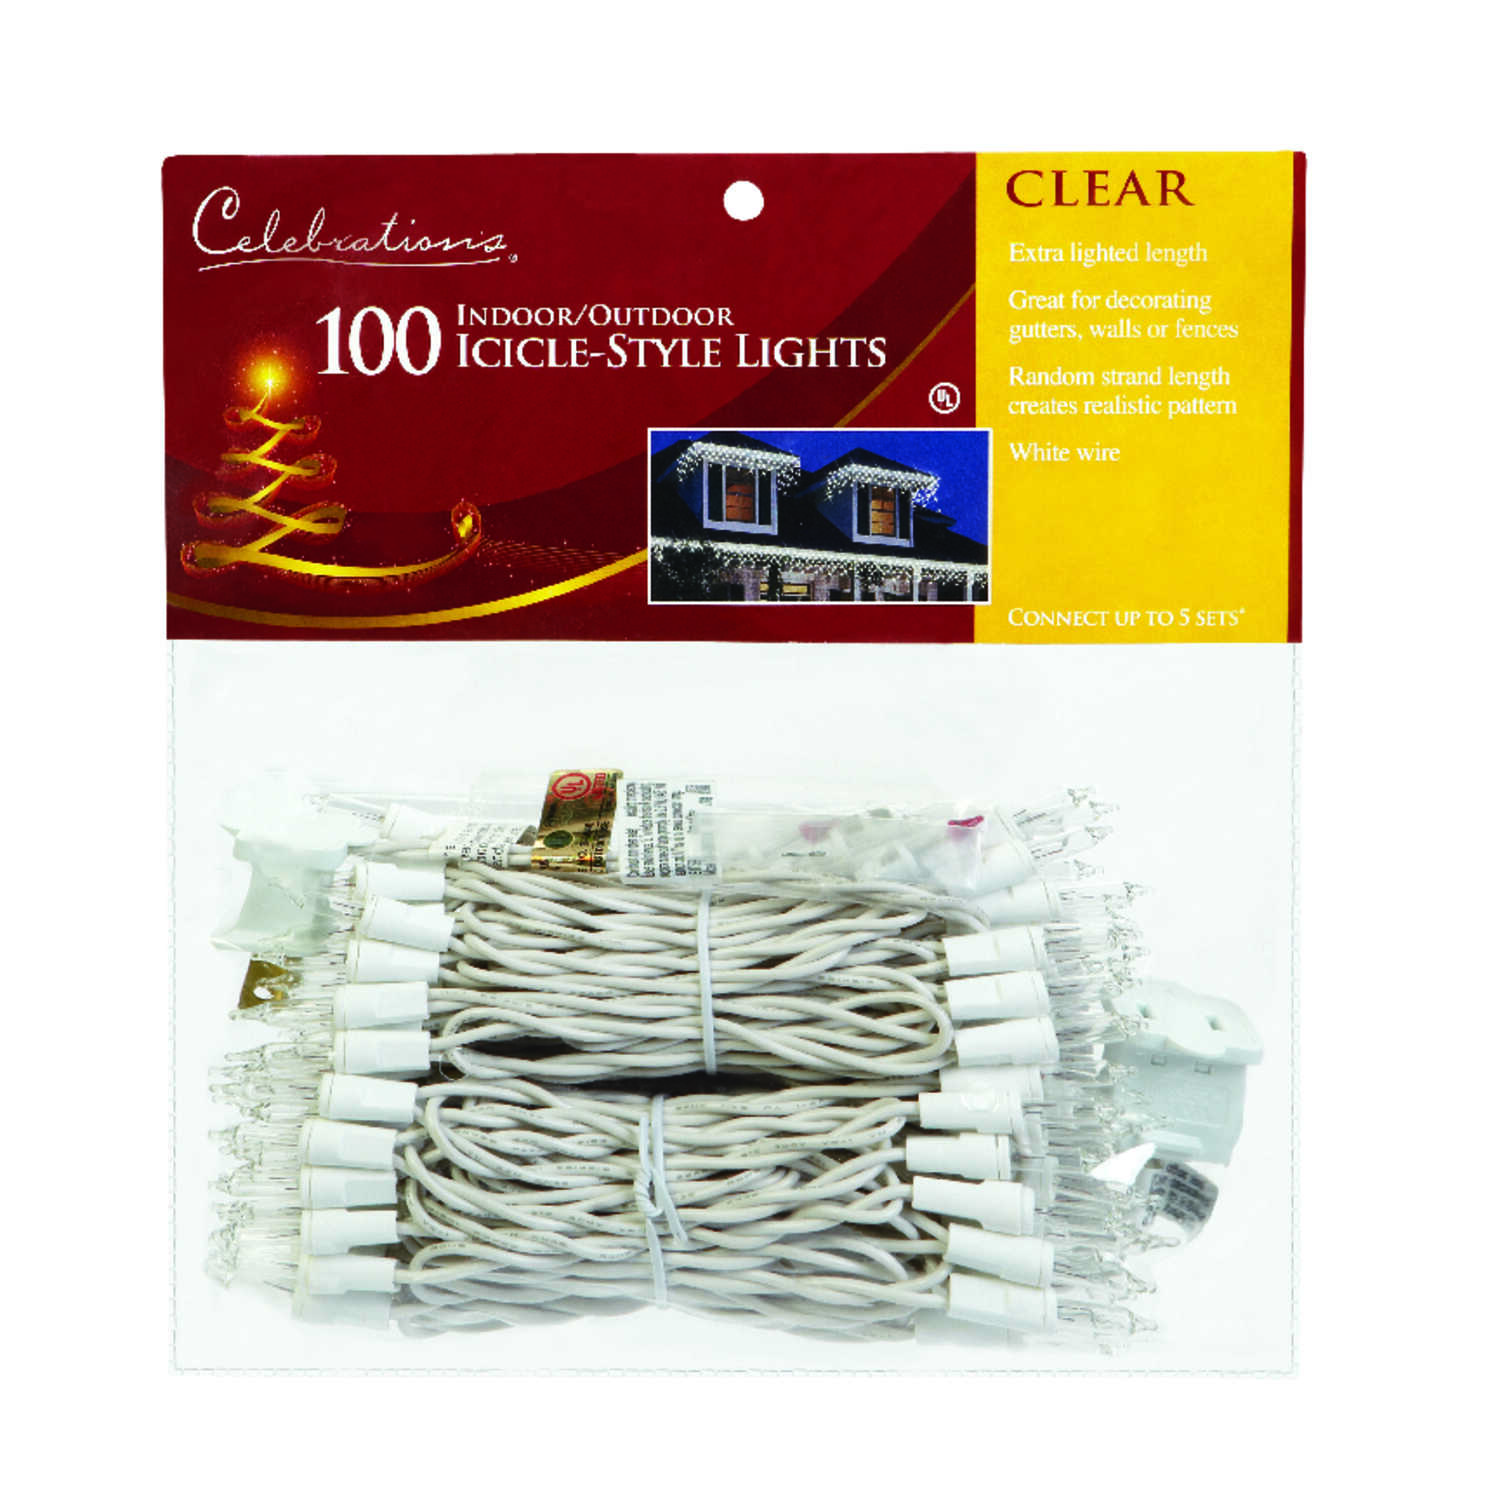 Celebrations  Incandescent  Icicle  Light Set  Clear  8.5 ft. 100 lights